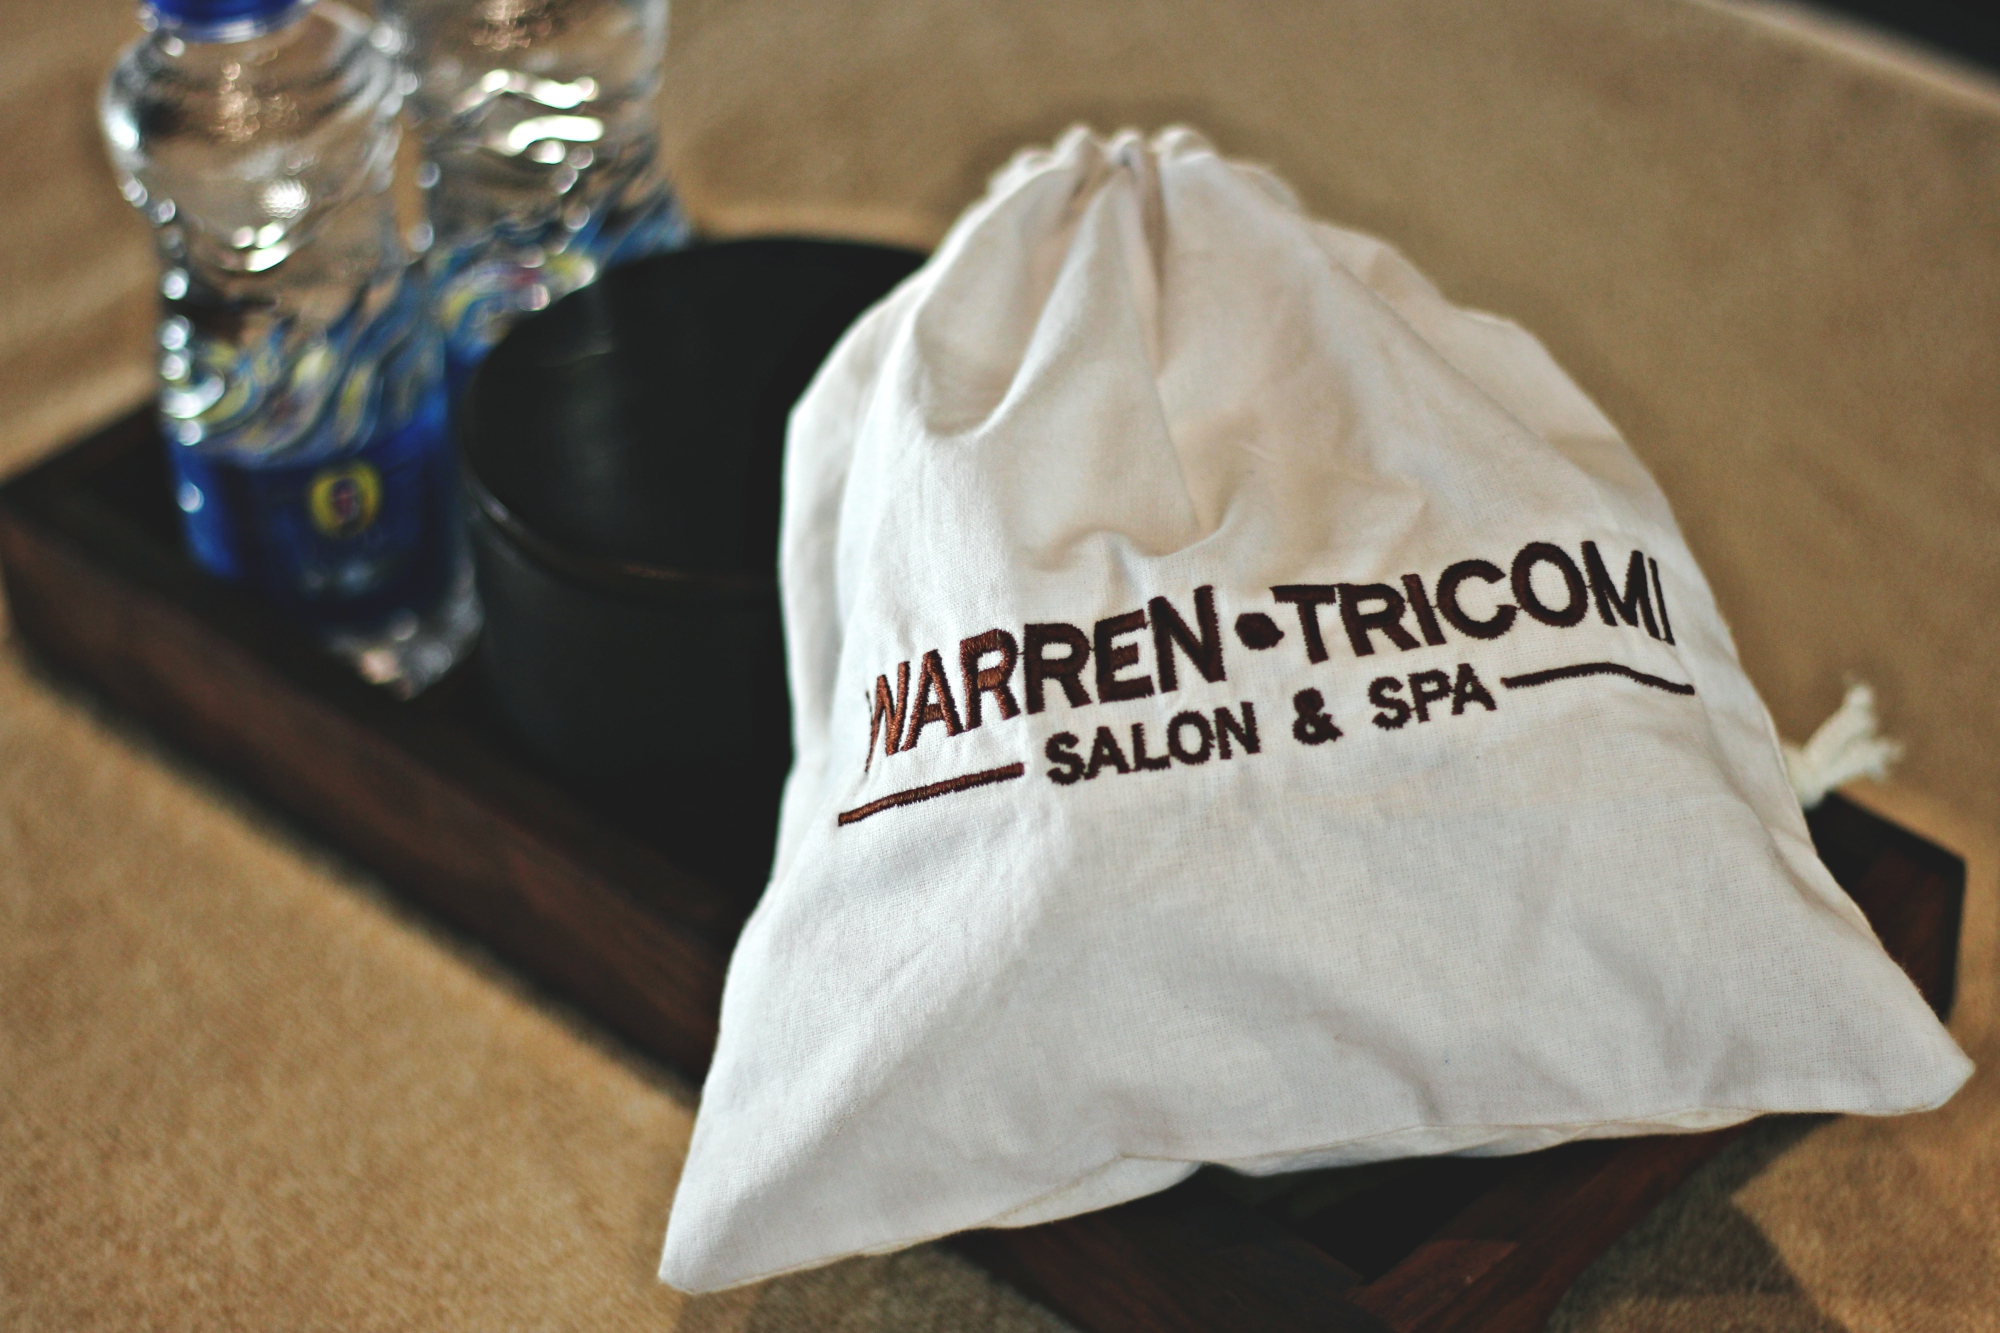 warren tricomi spa